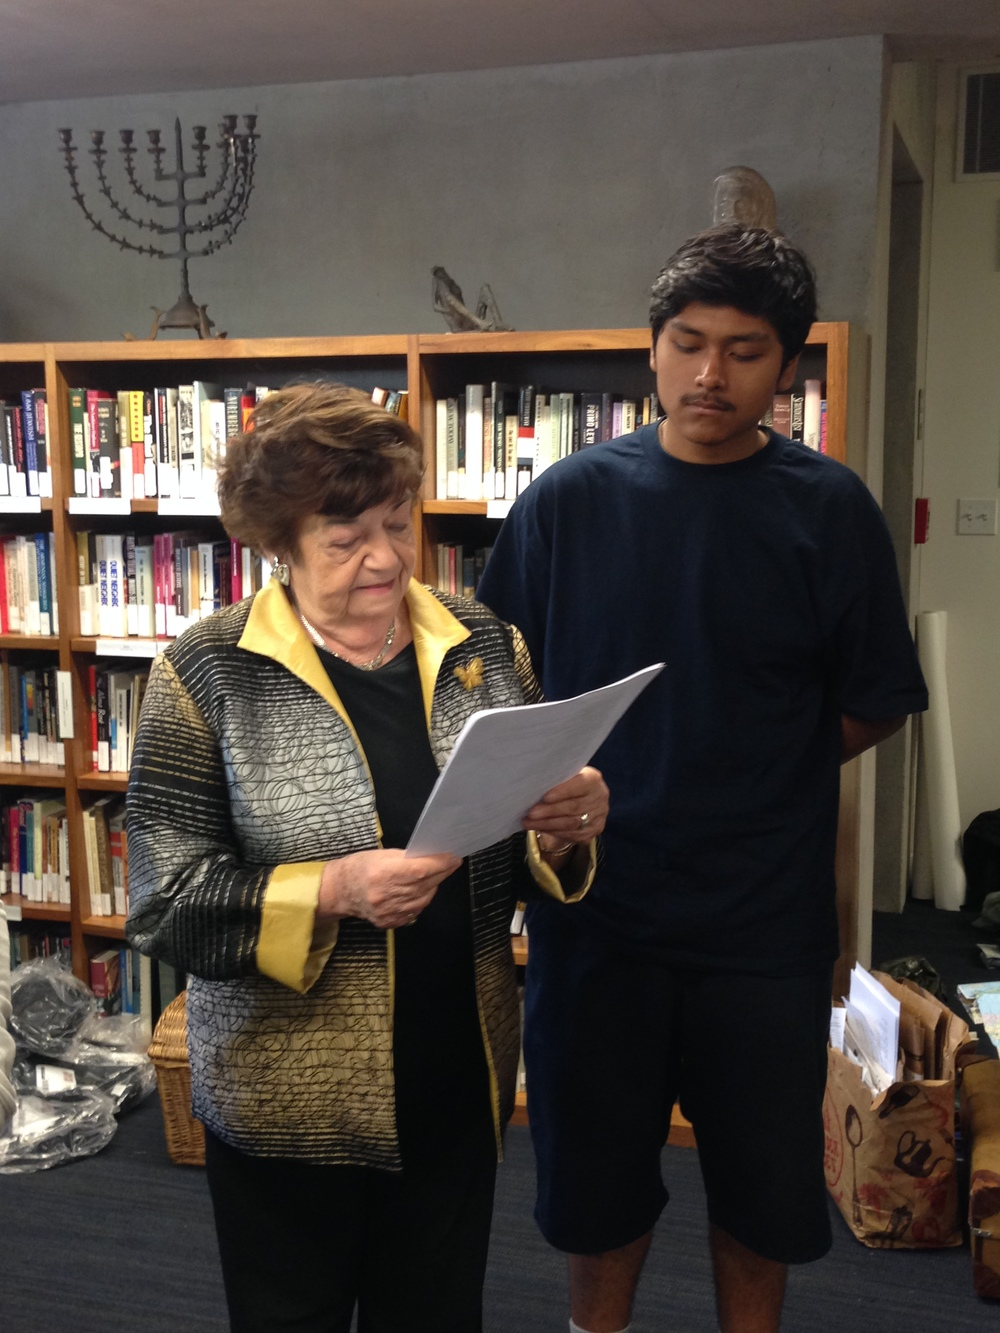 Terezin survivor Ela Weissberger with student participant Manuel Rosas from Harris Newmark High School.